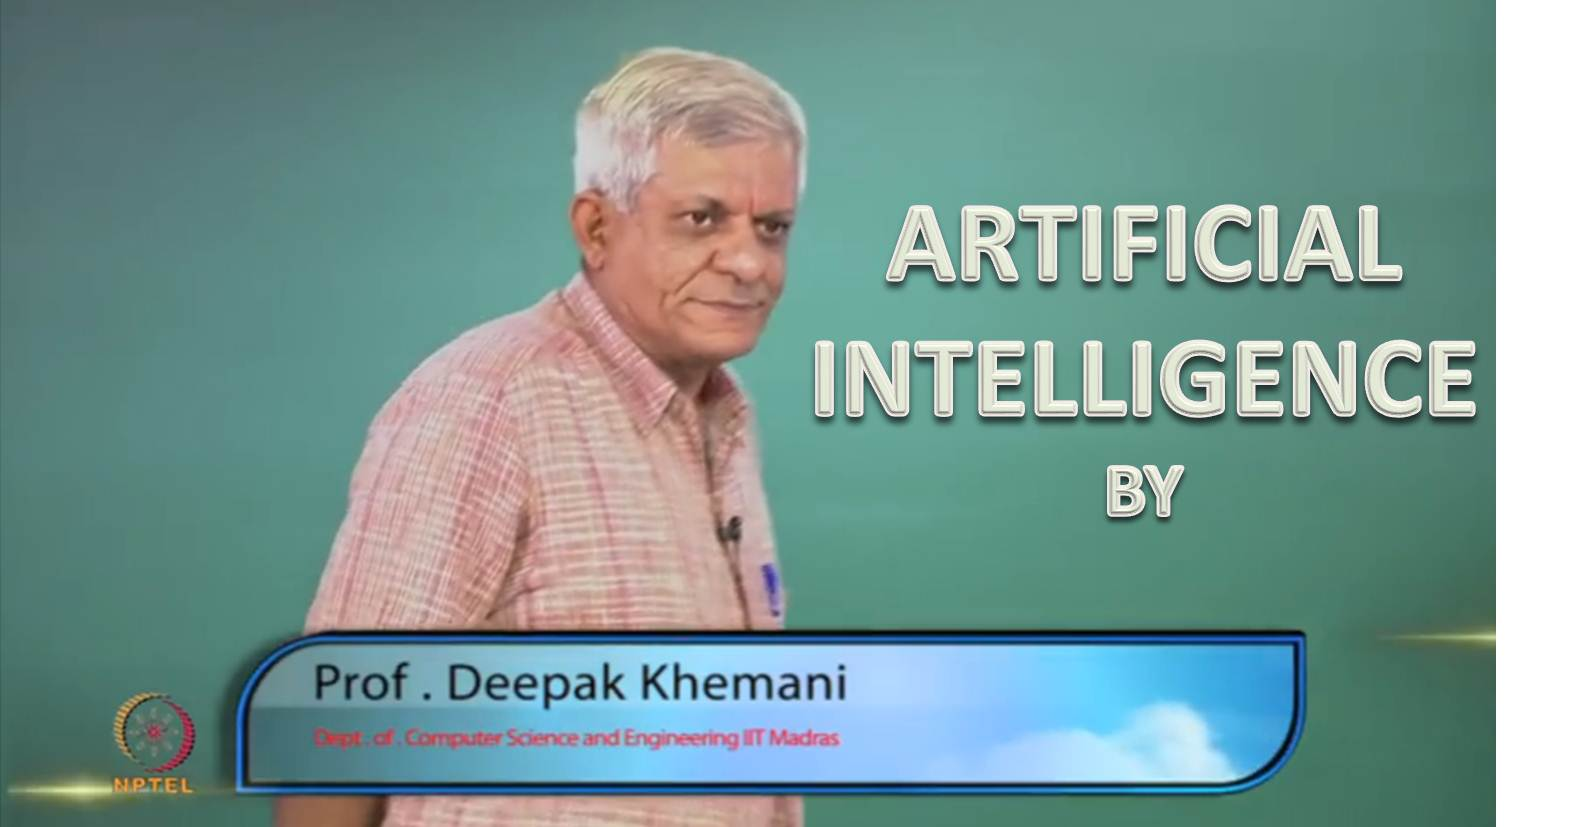 http://study.aisectonline.com/images/SubCategory/Lecture Series on Artificial Intelligence by Prof. Deepak Khemani, IIT Madras.jpg